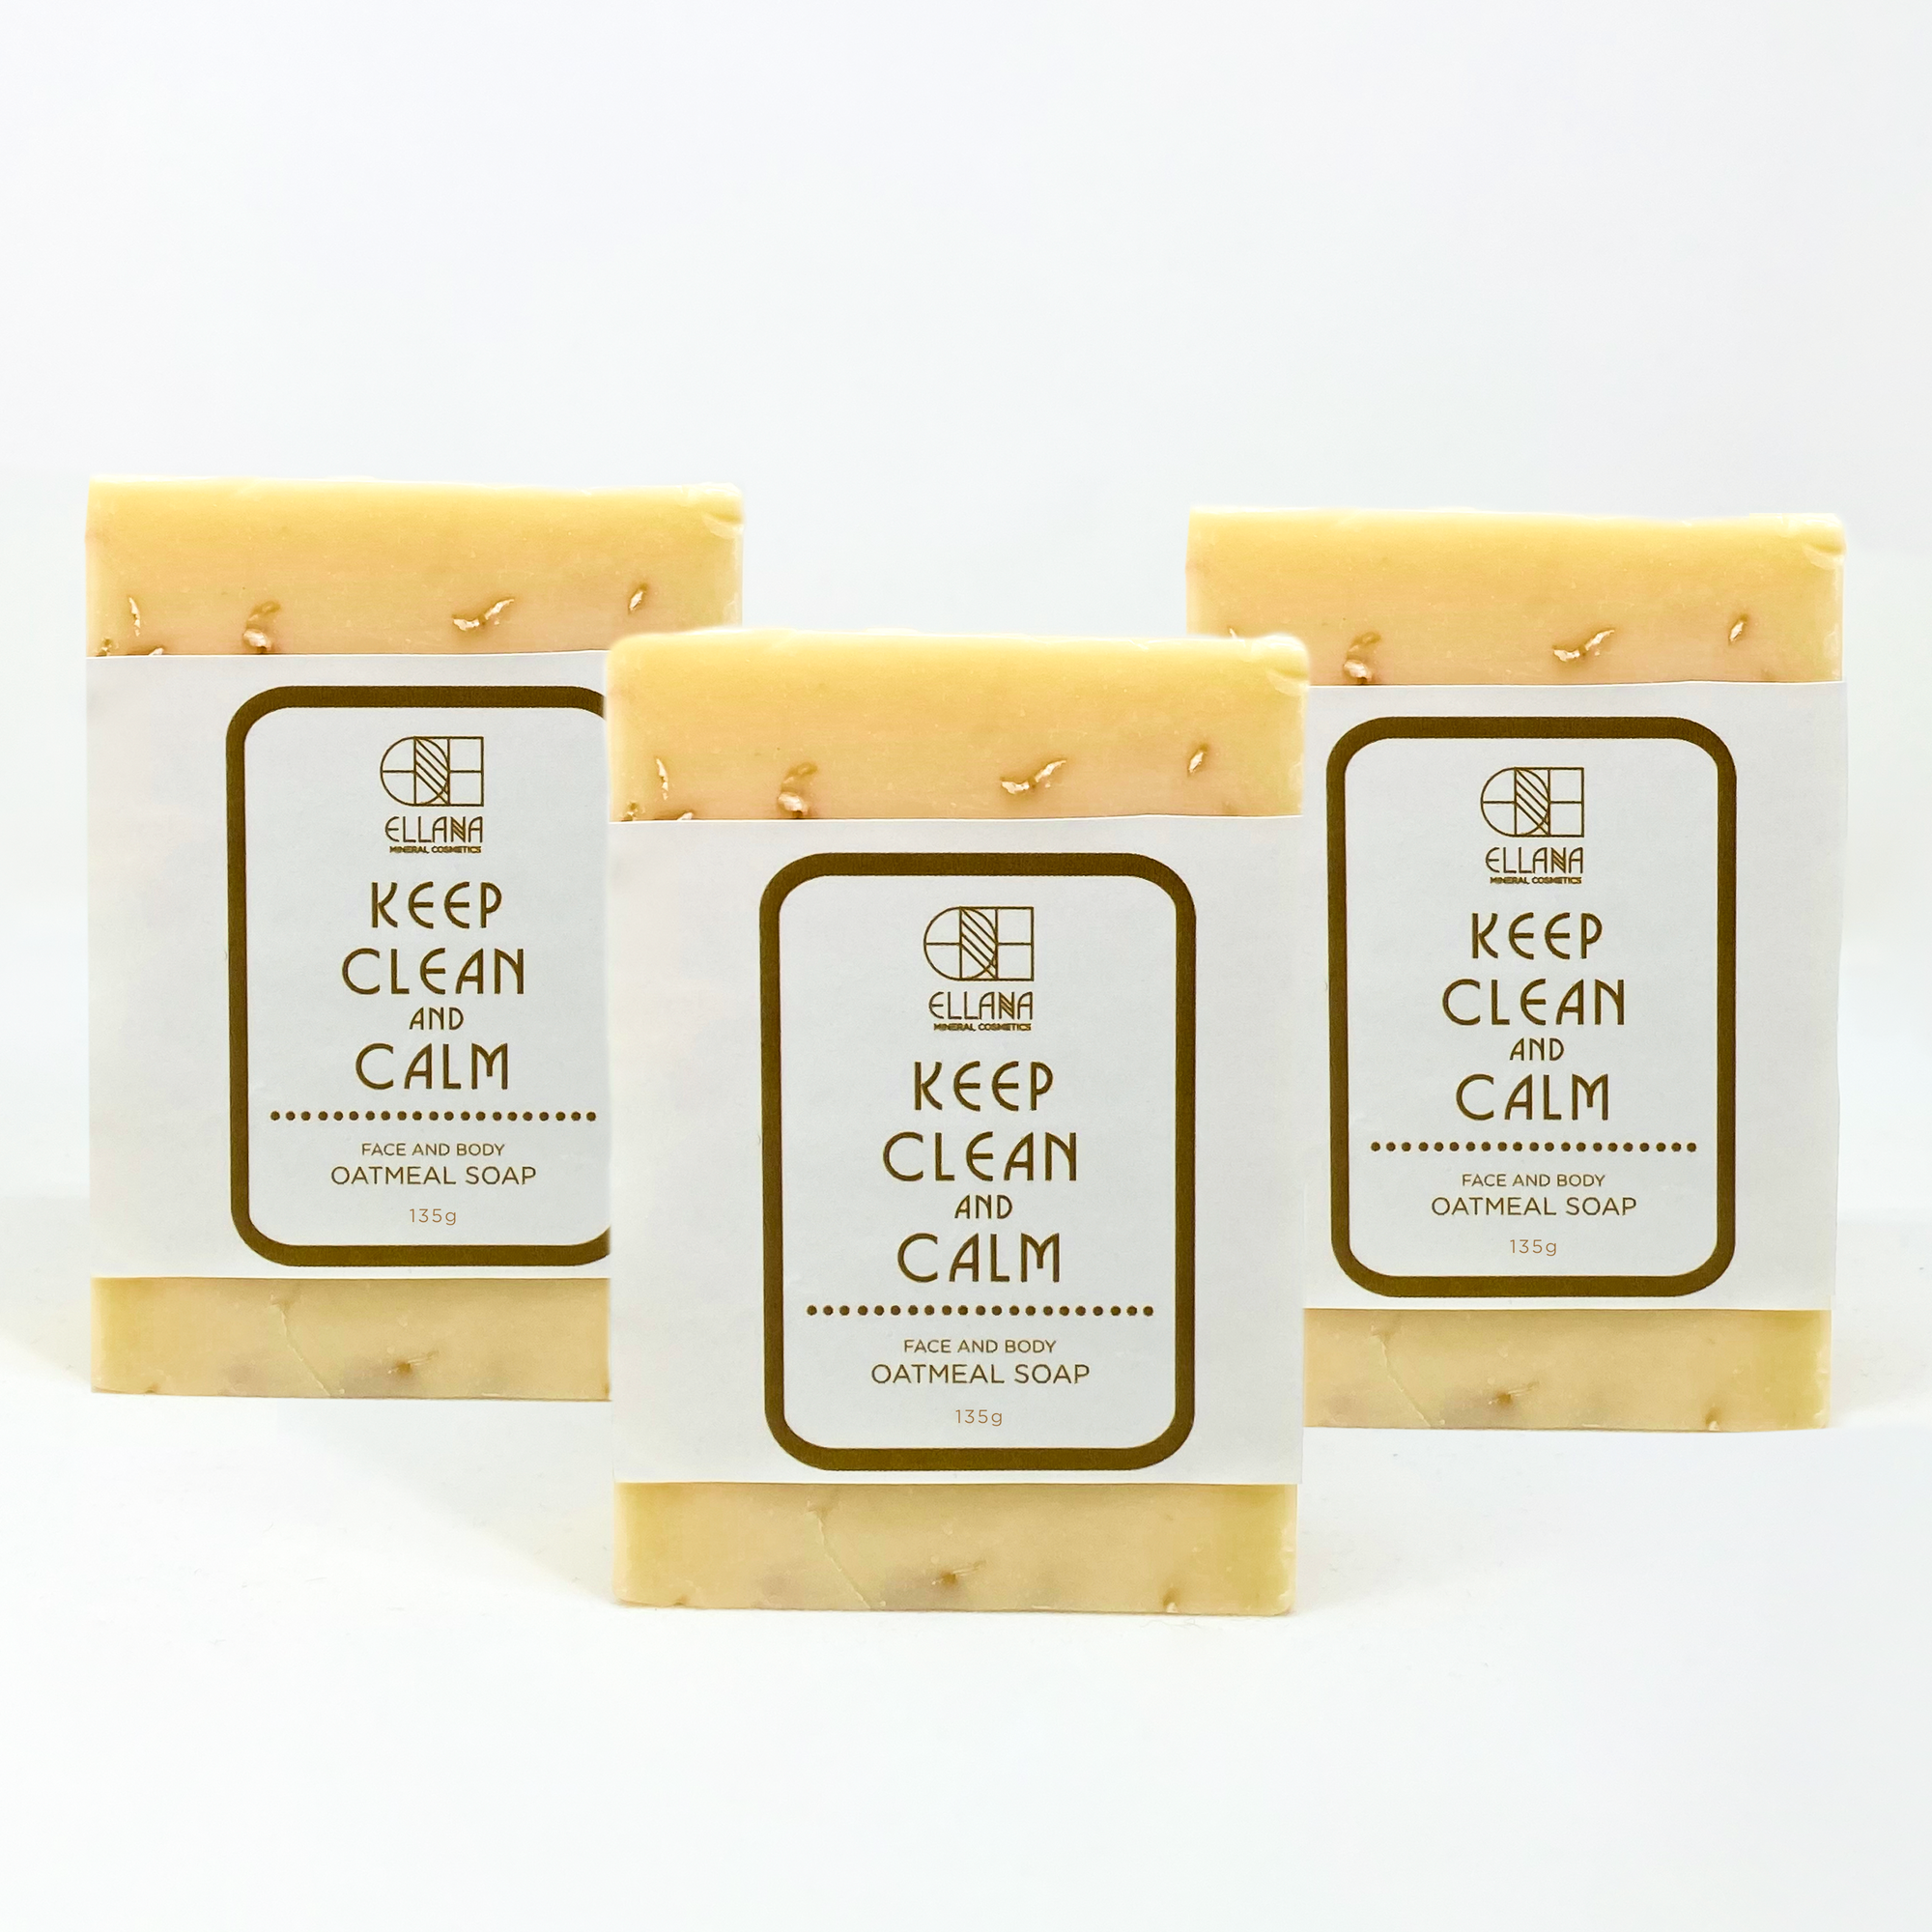 Keep Clean and Calm Face and Body Oatmeal Soap - Pack of 3